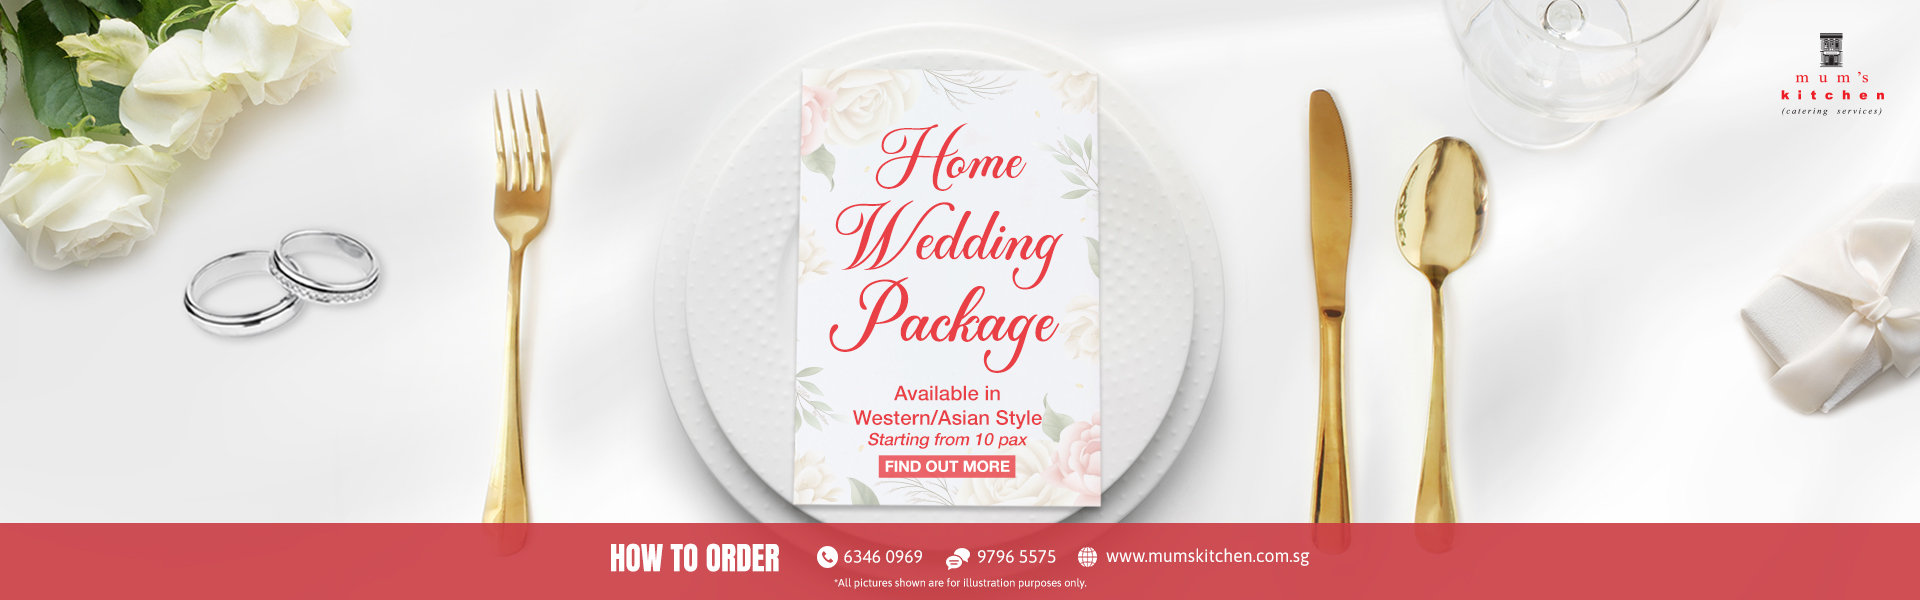 https://www.mumskitchen.com.sg/image/catalog/HomePage Banner Slider/mk-weddingpackage-desktopweb.jpg